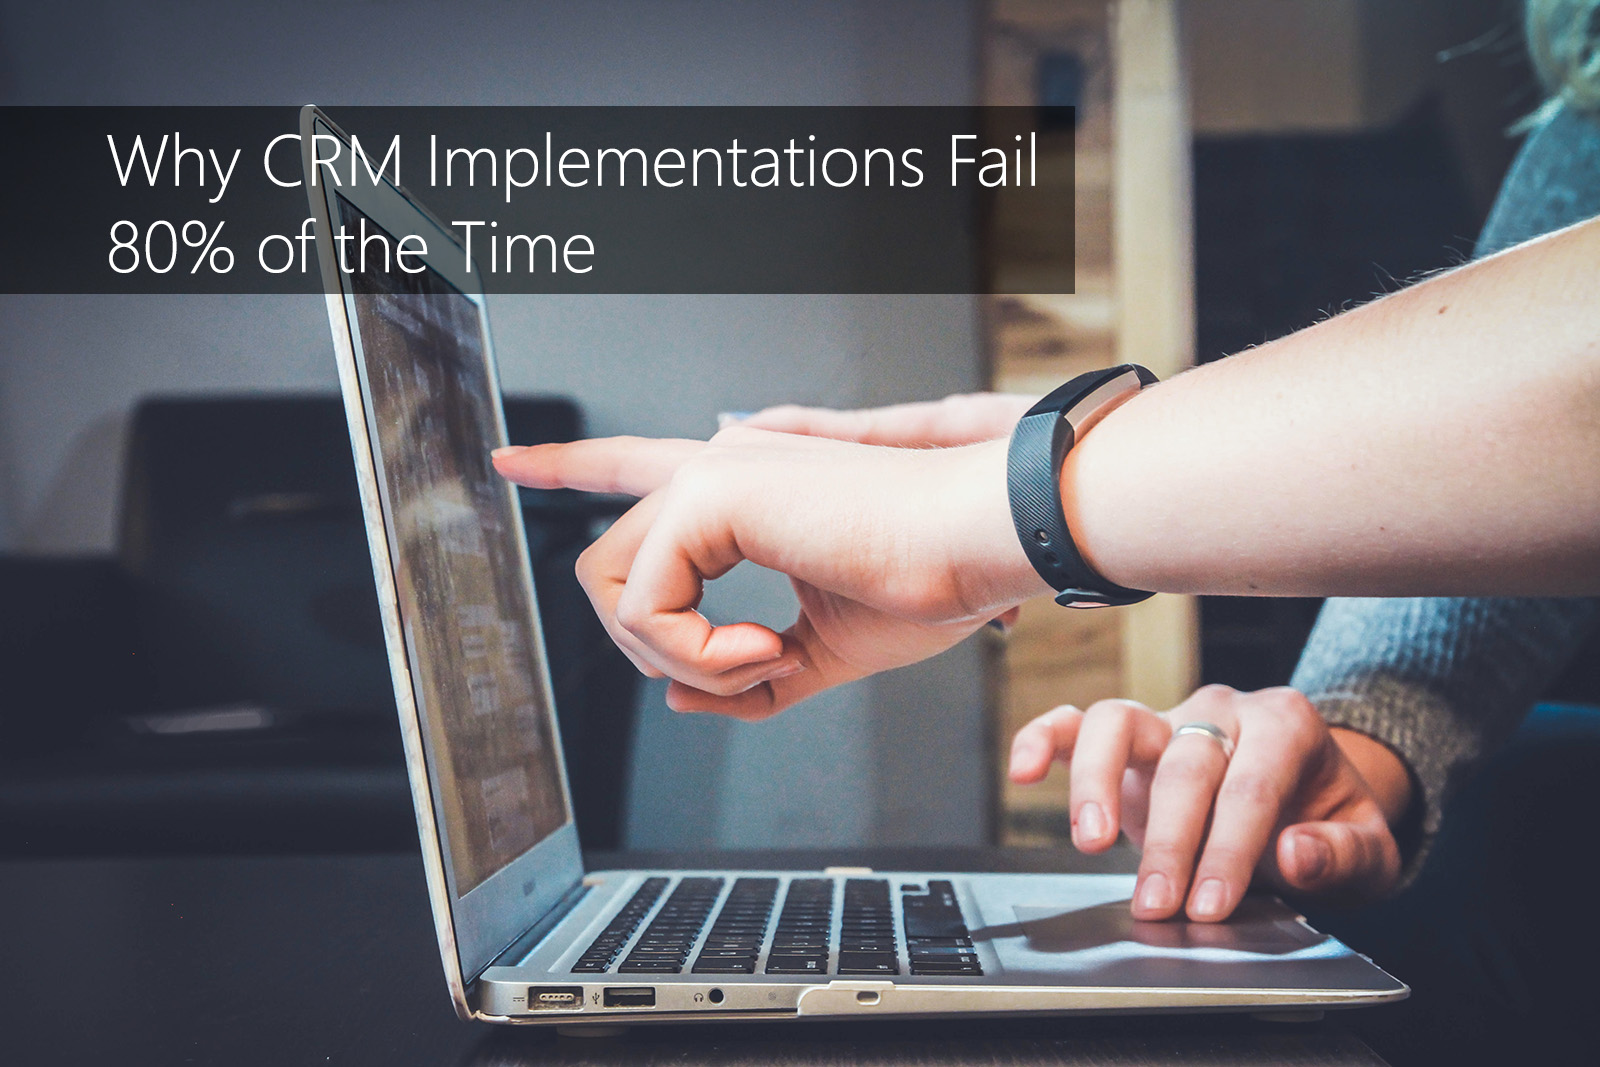 Why CRM Implementations Fail 80% of the Time